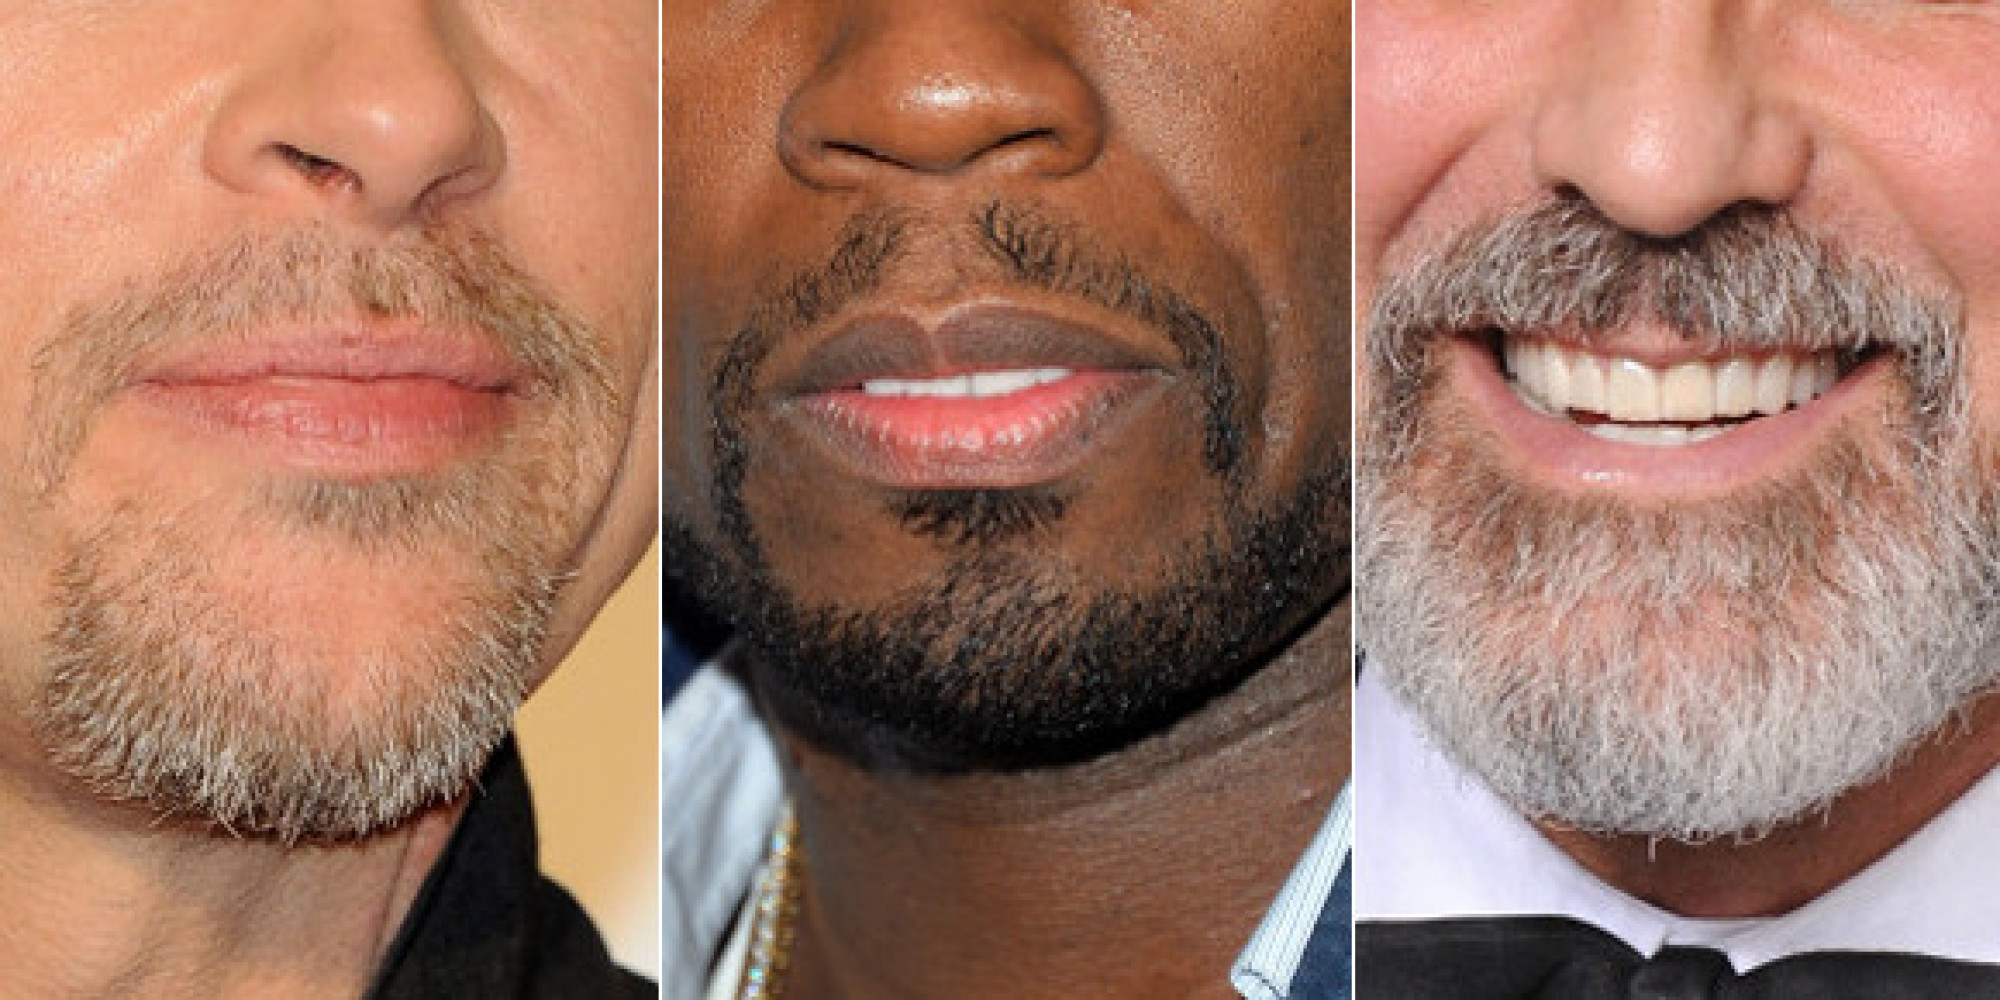 Facial Hair Styles Pictures: What A Man's Facial Hair Says About Him, According To A